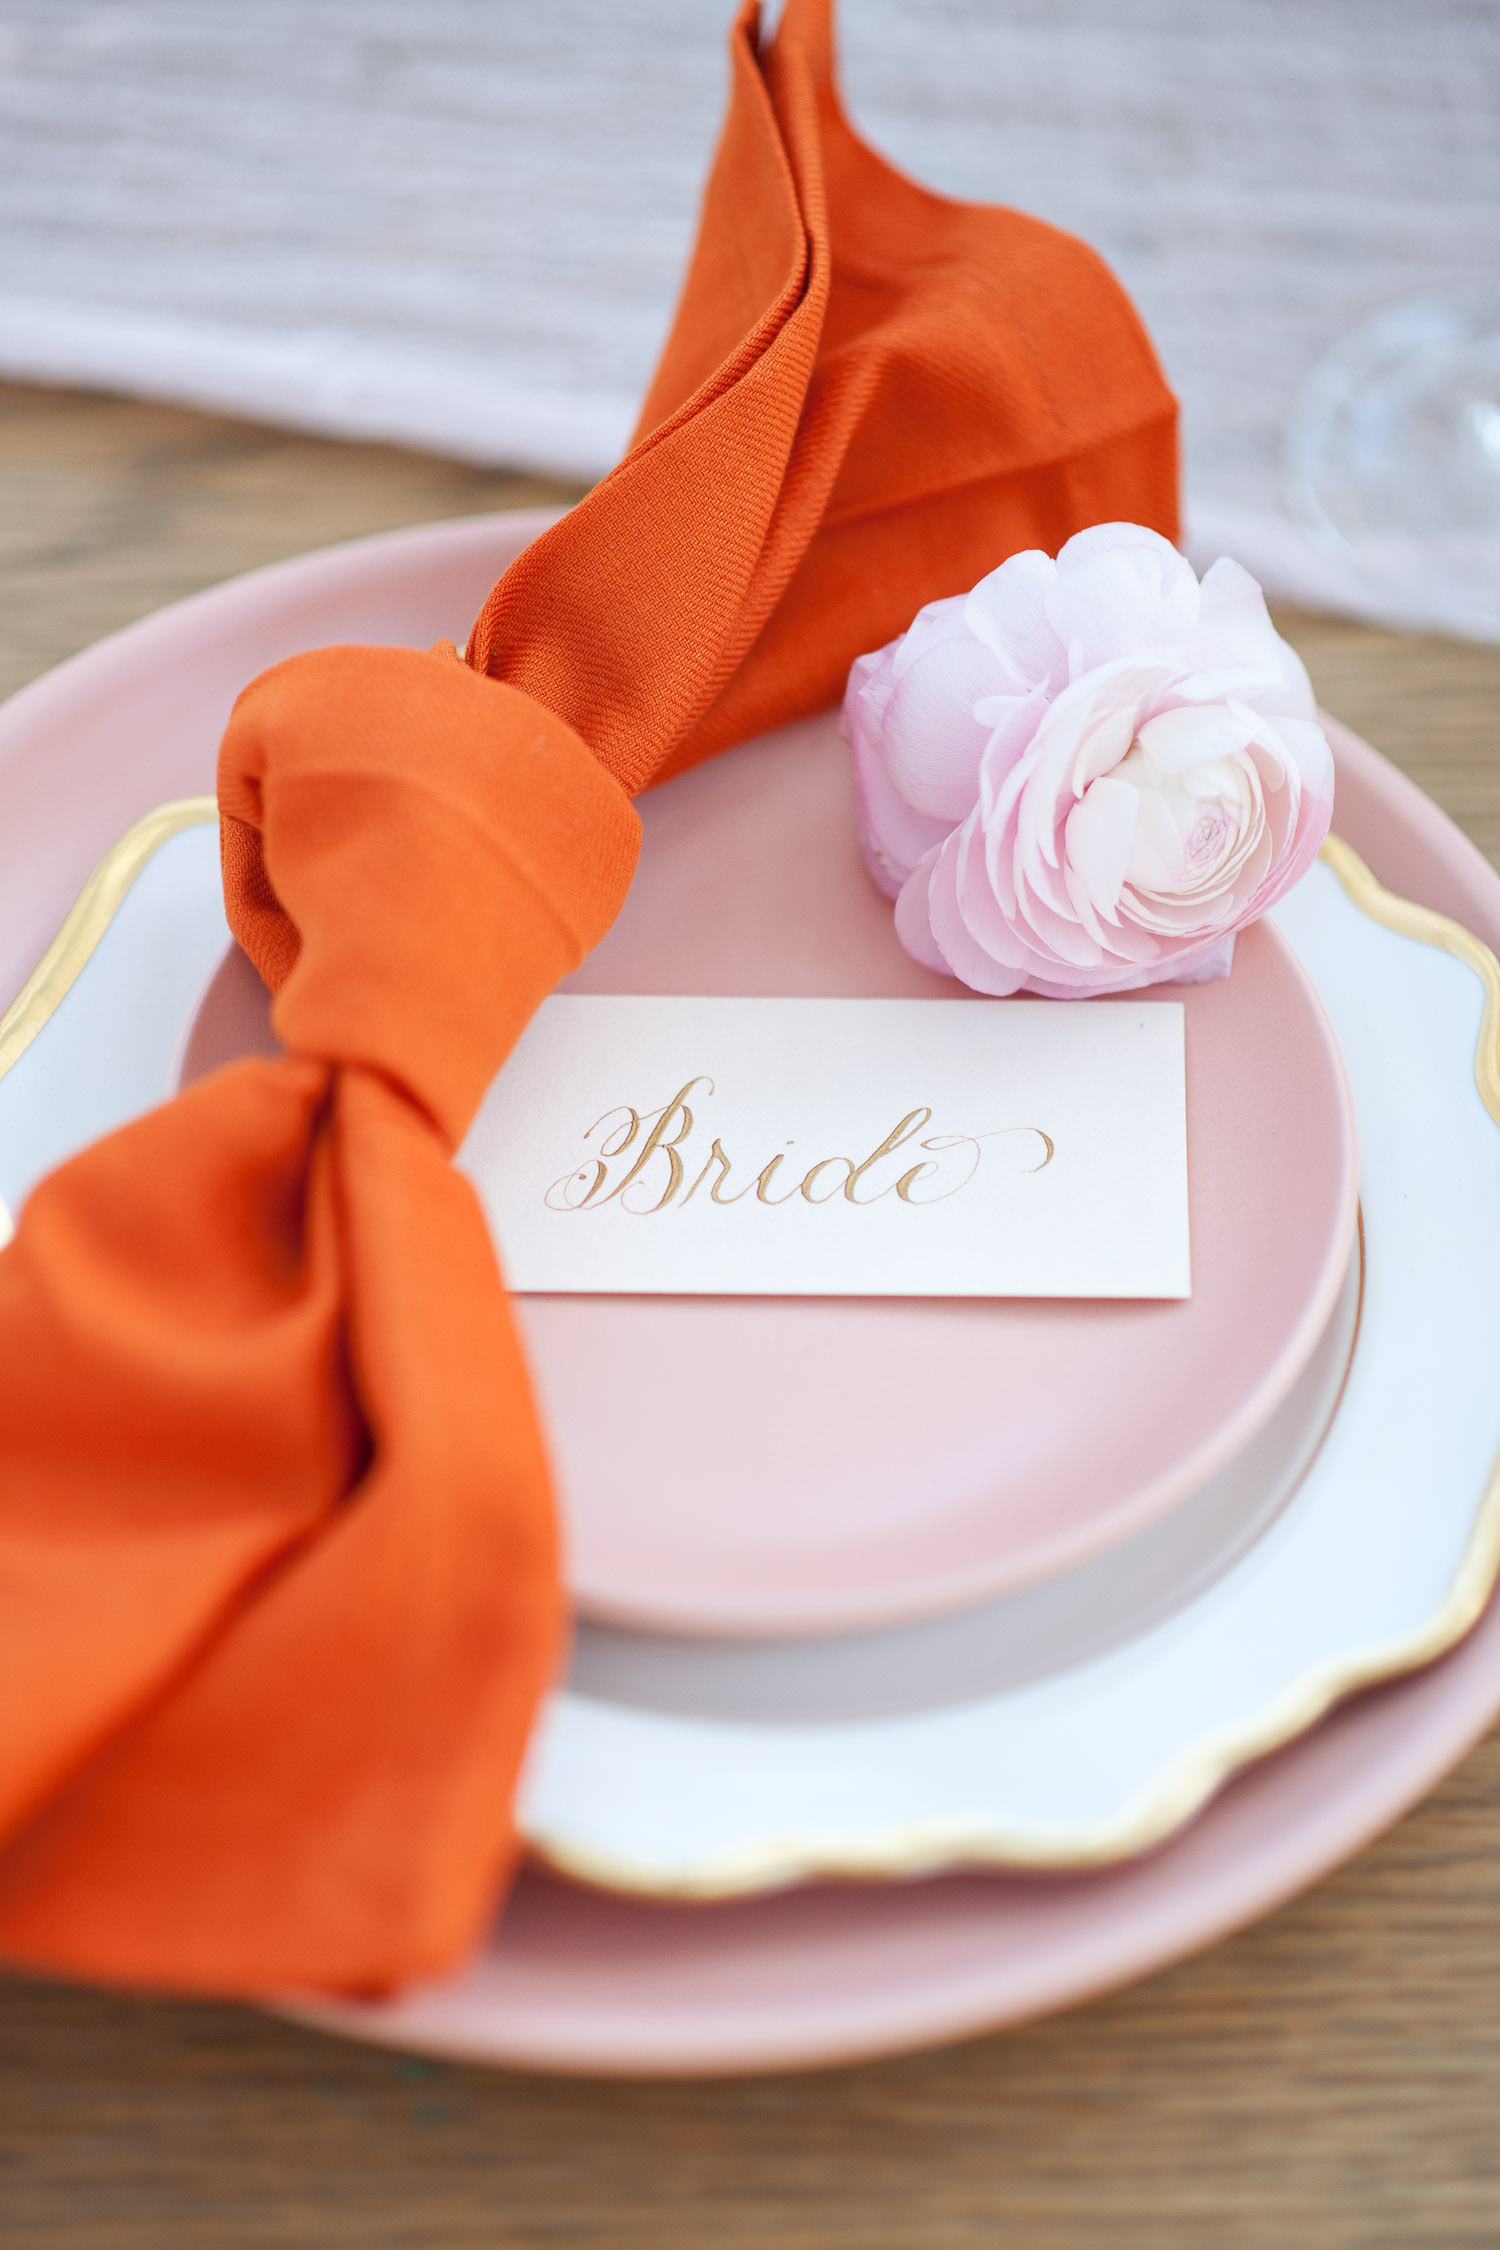 The bride's place setting at her garden wedding captured by Tara Whittaker Photography